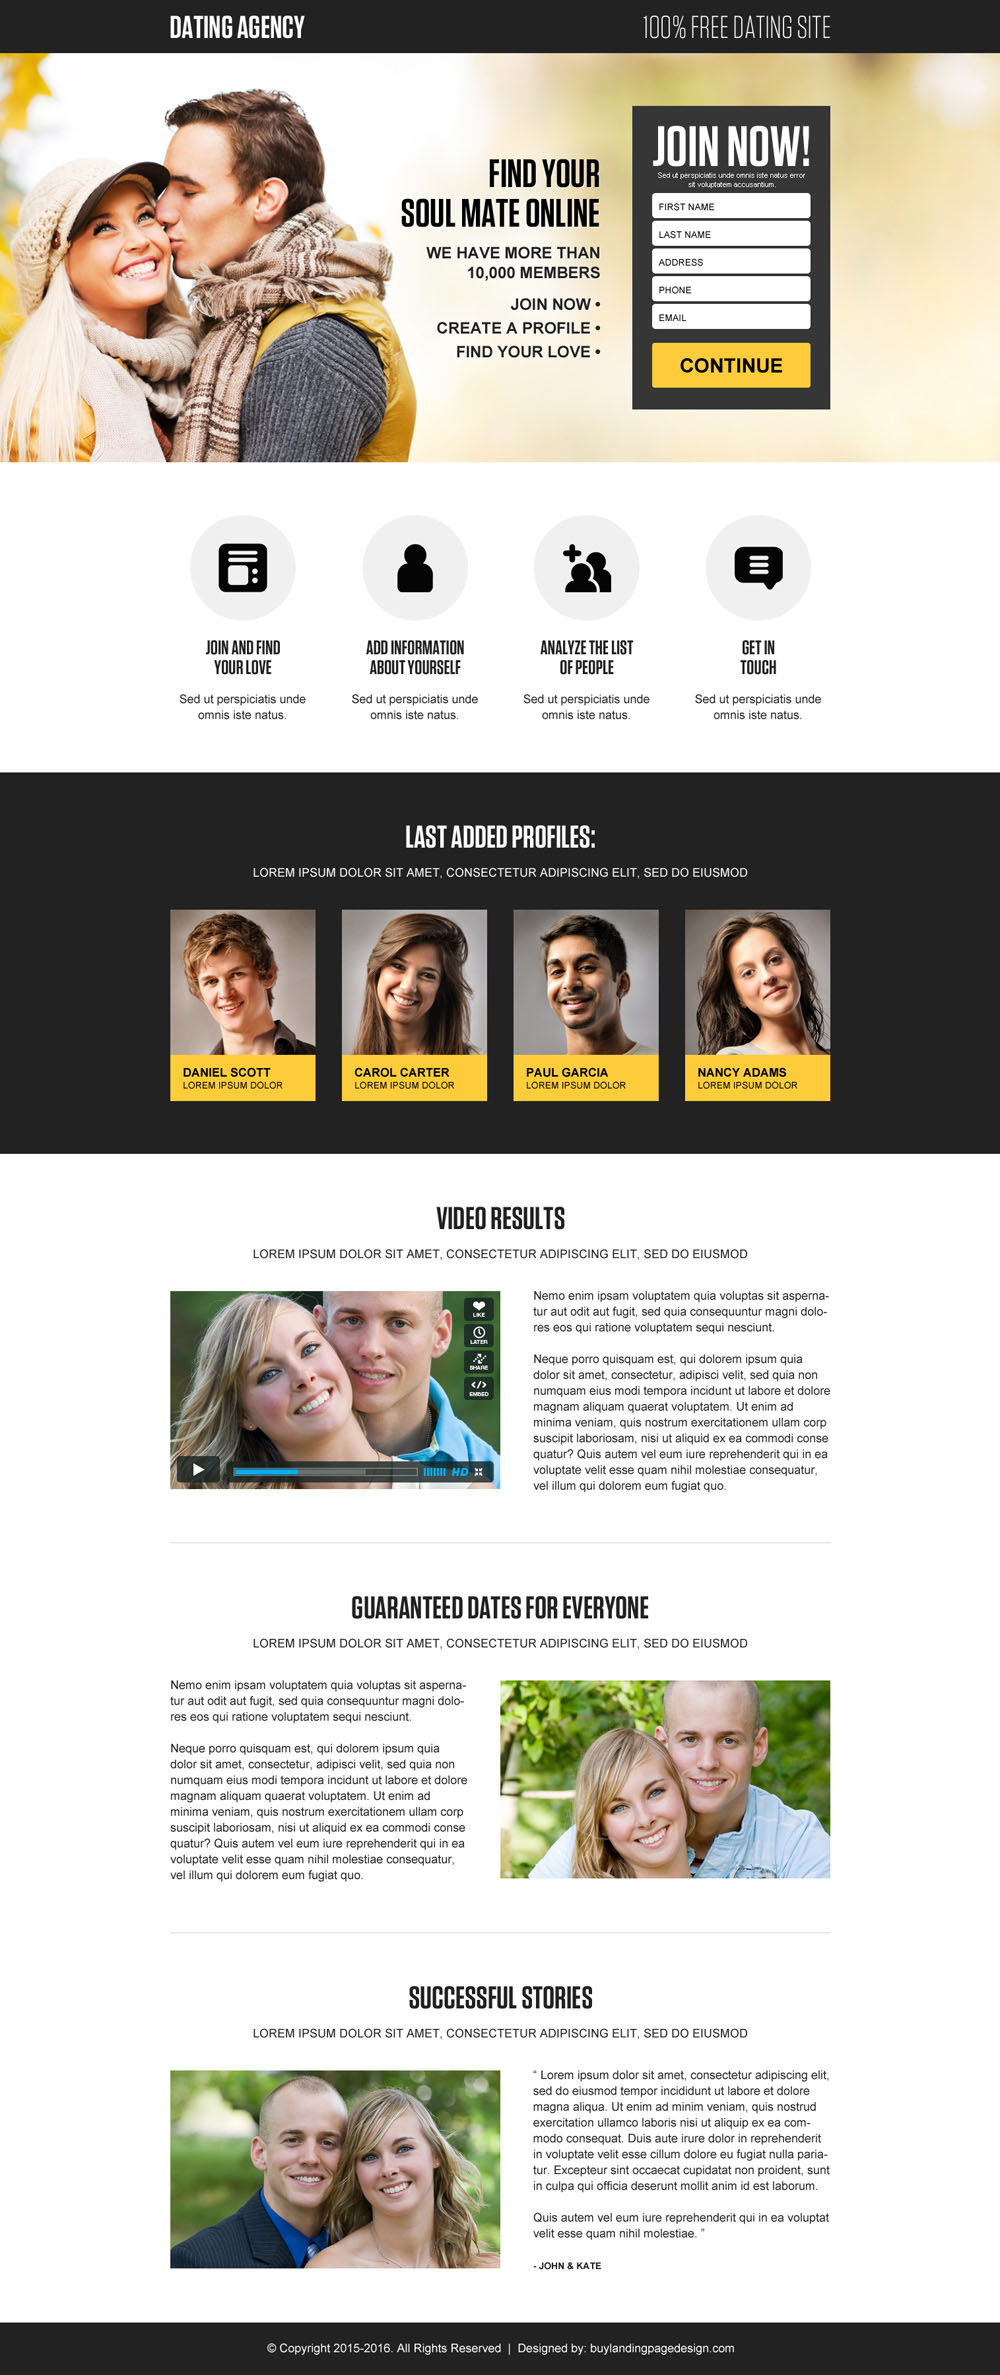 free-online-dating-site-leads-generation-landing-page-design-028